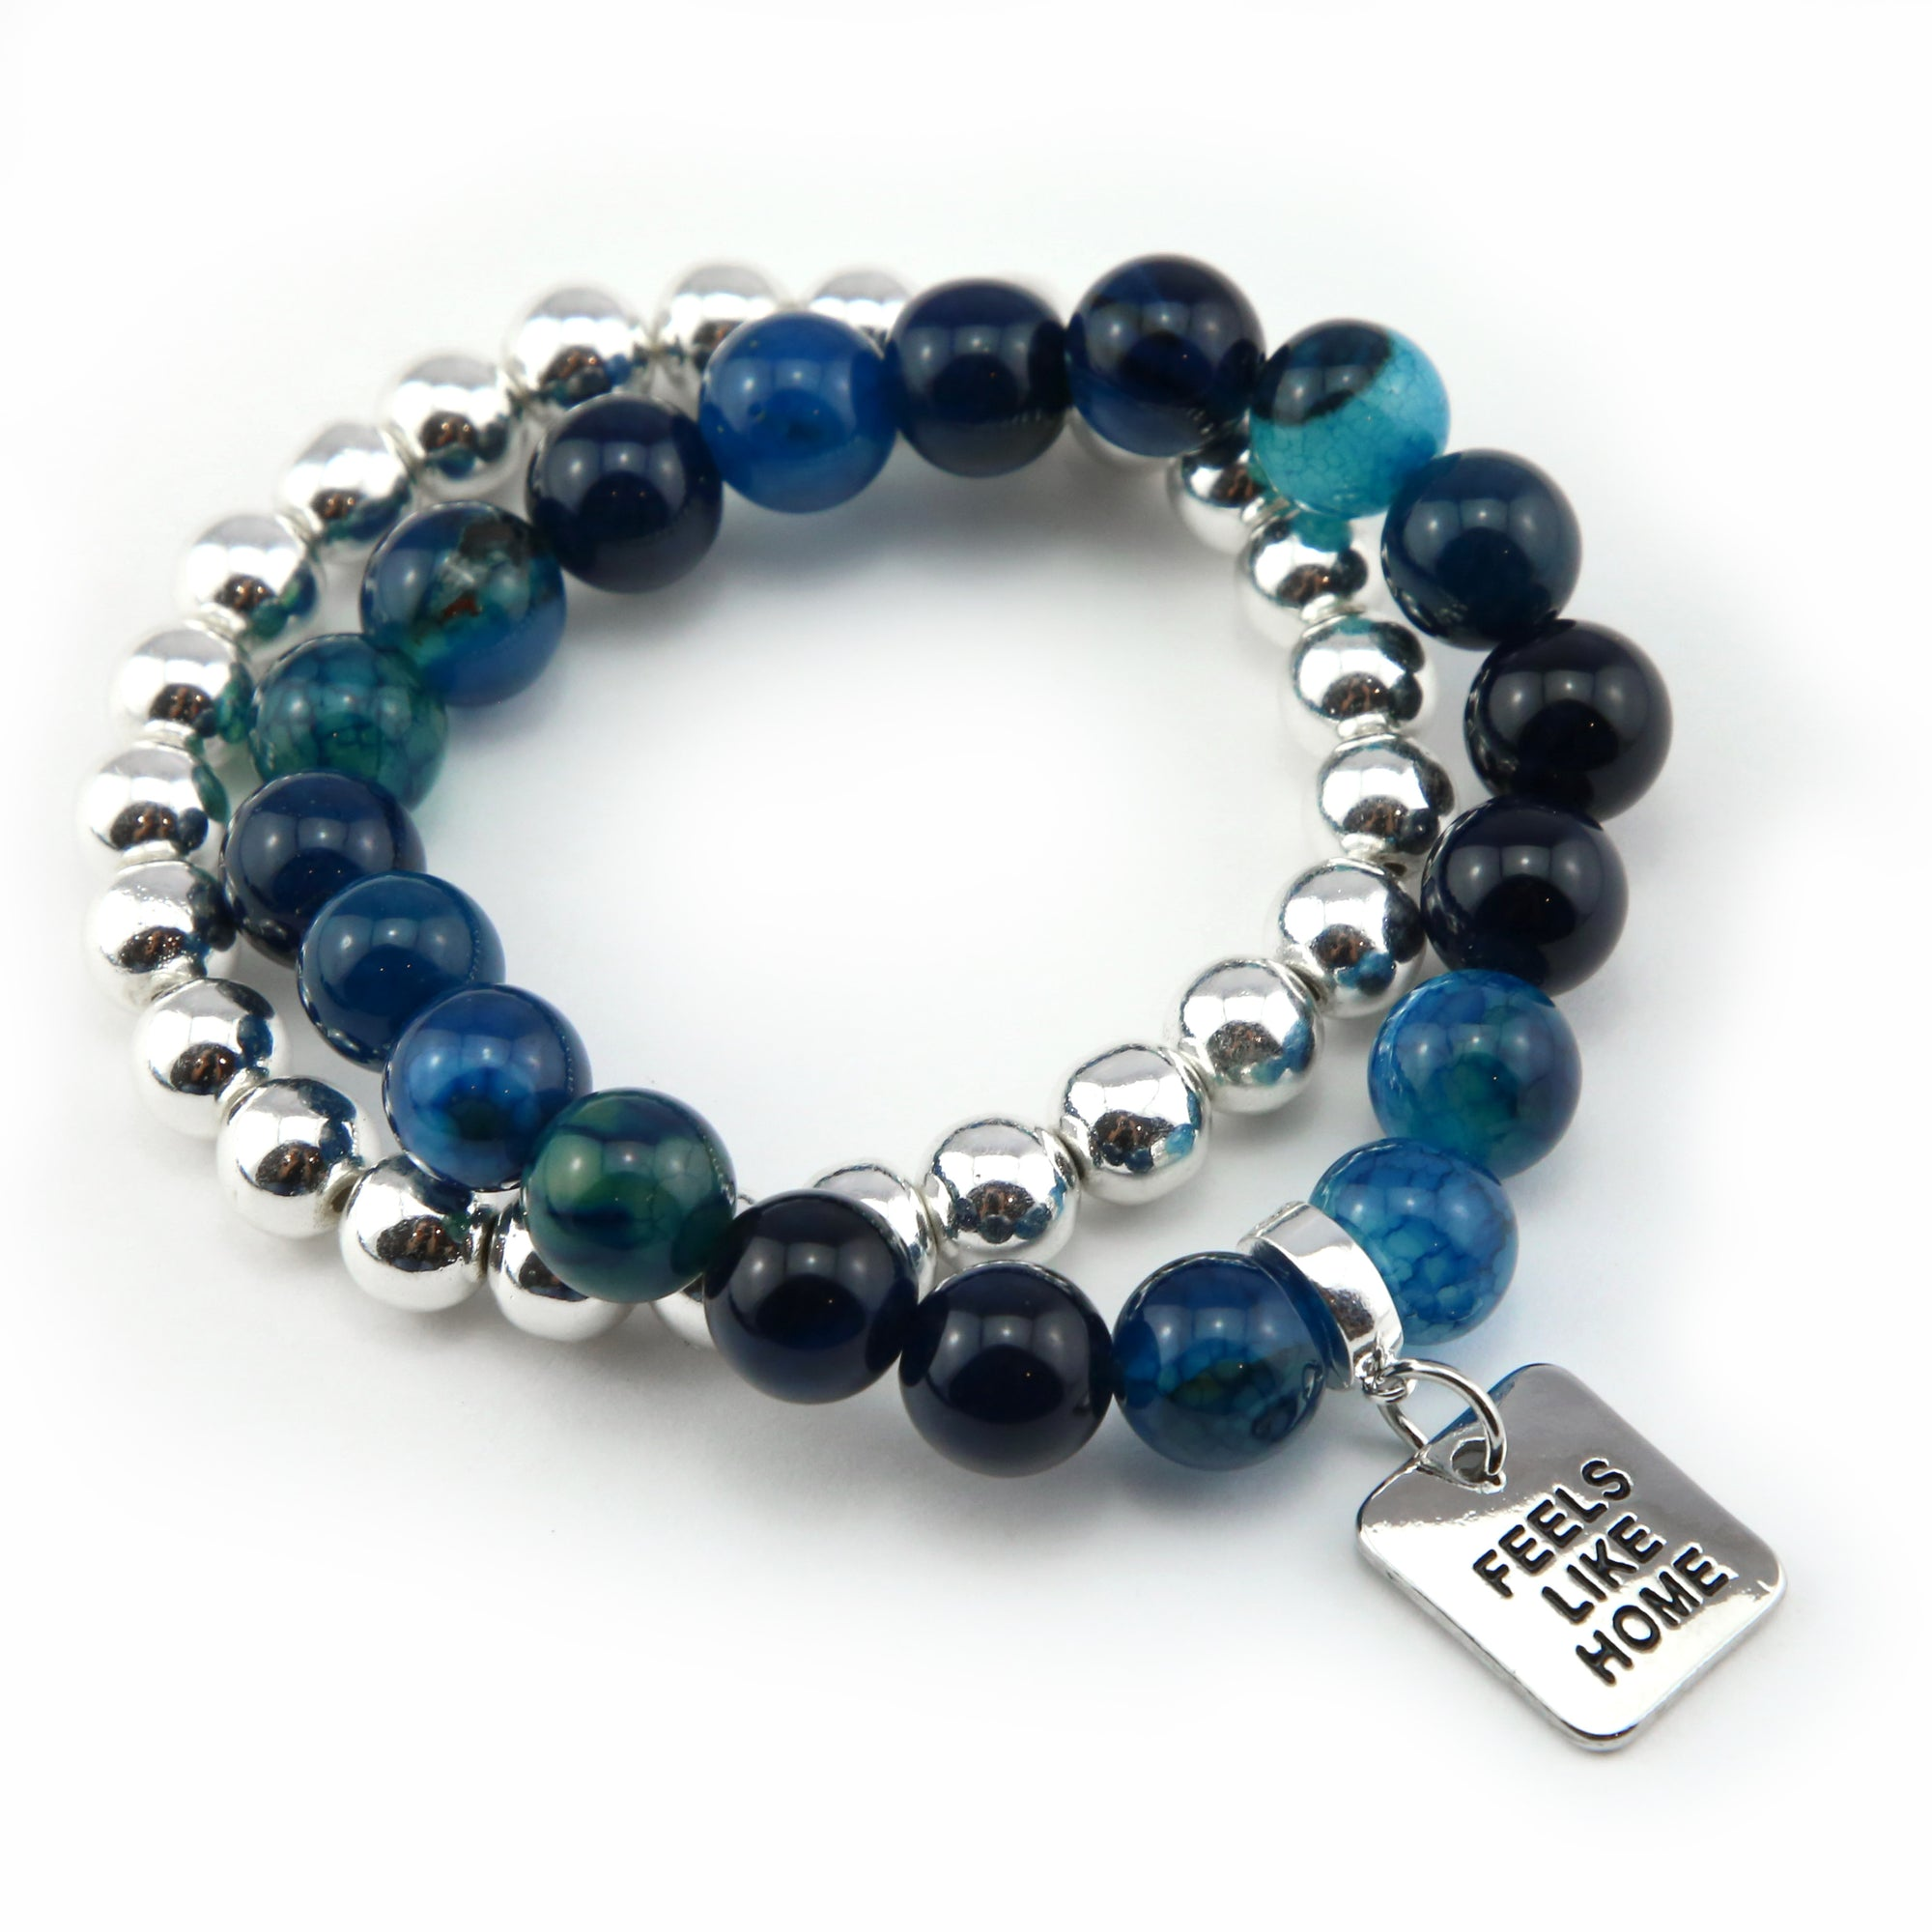 Bracelet Duo! 10mm Oceans Teal Tourmaline & 8mm Silver bead bracelet stacker set - FEELS LIKE HOME (10851)